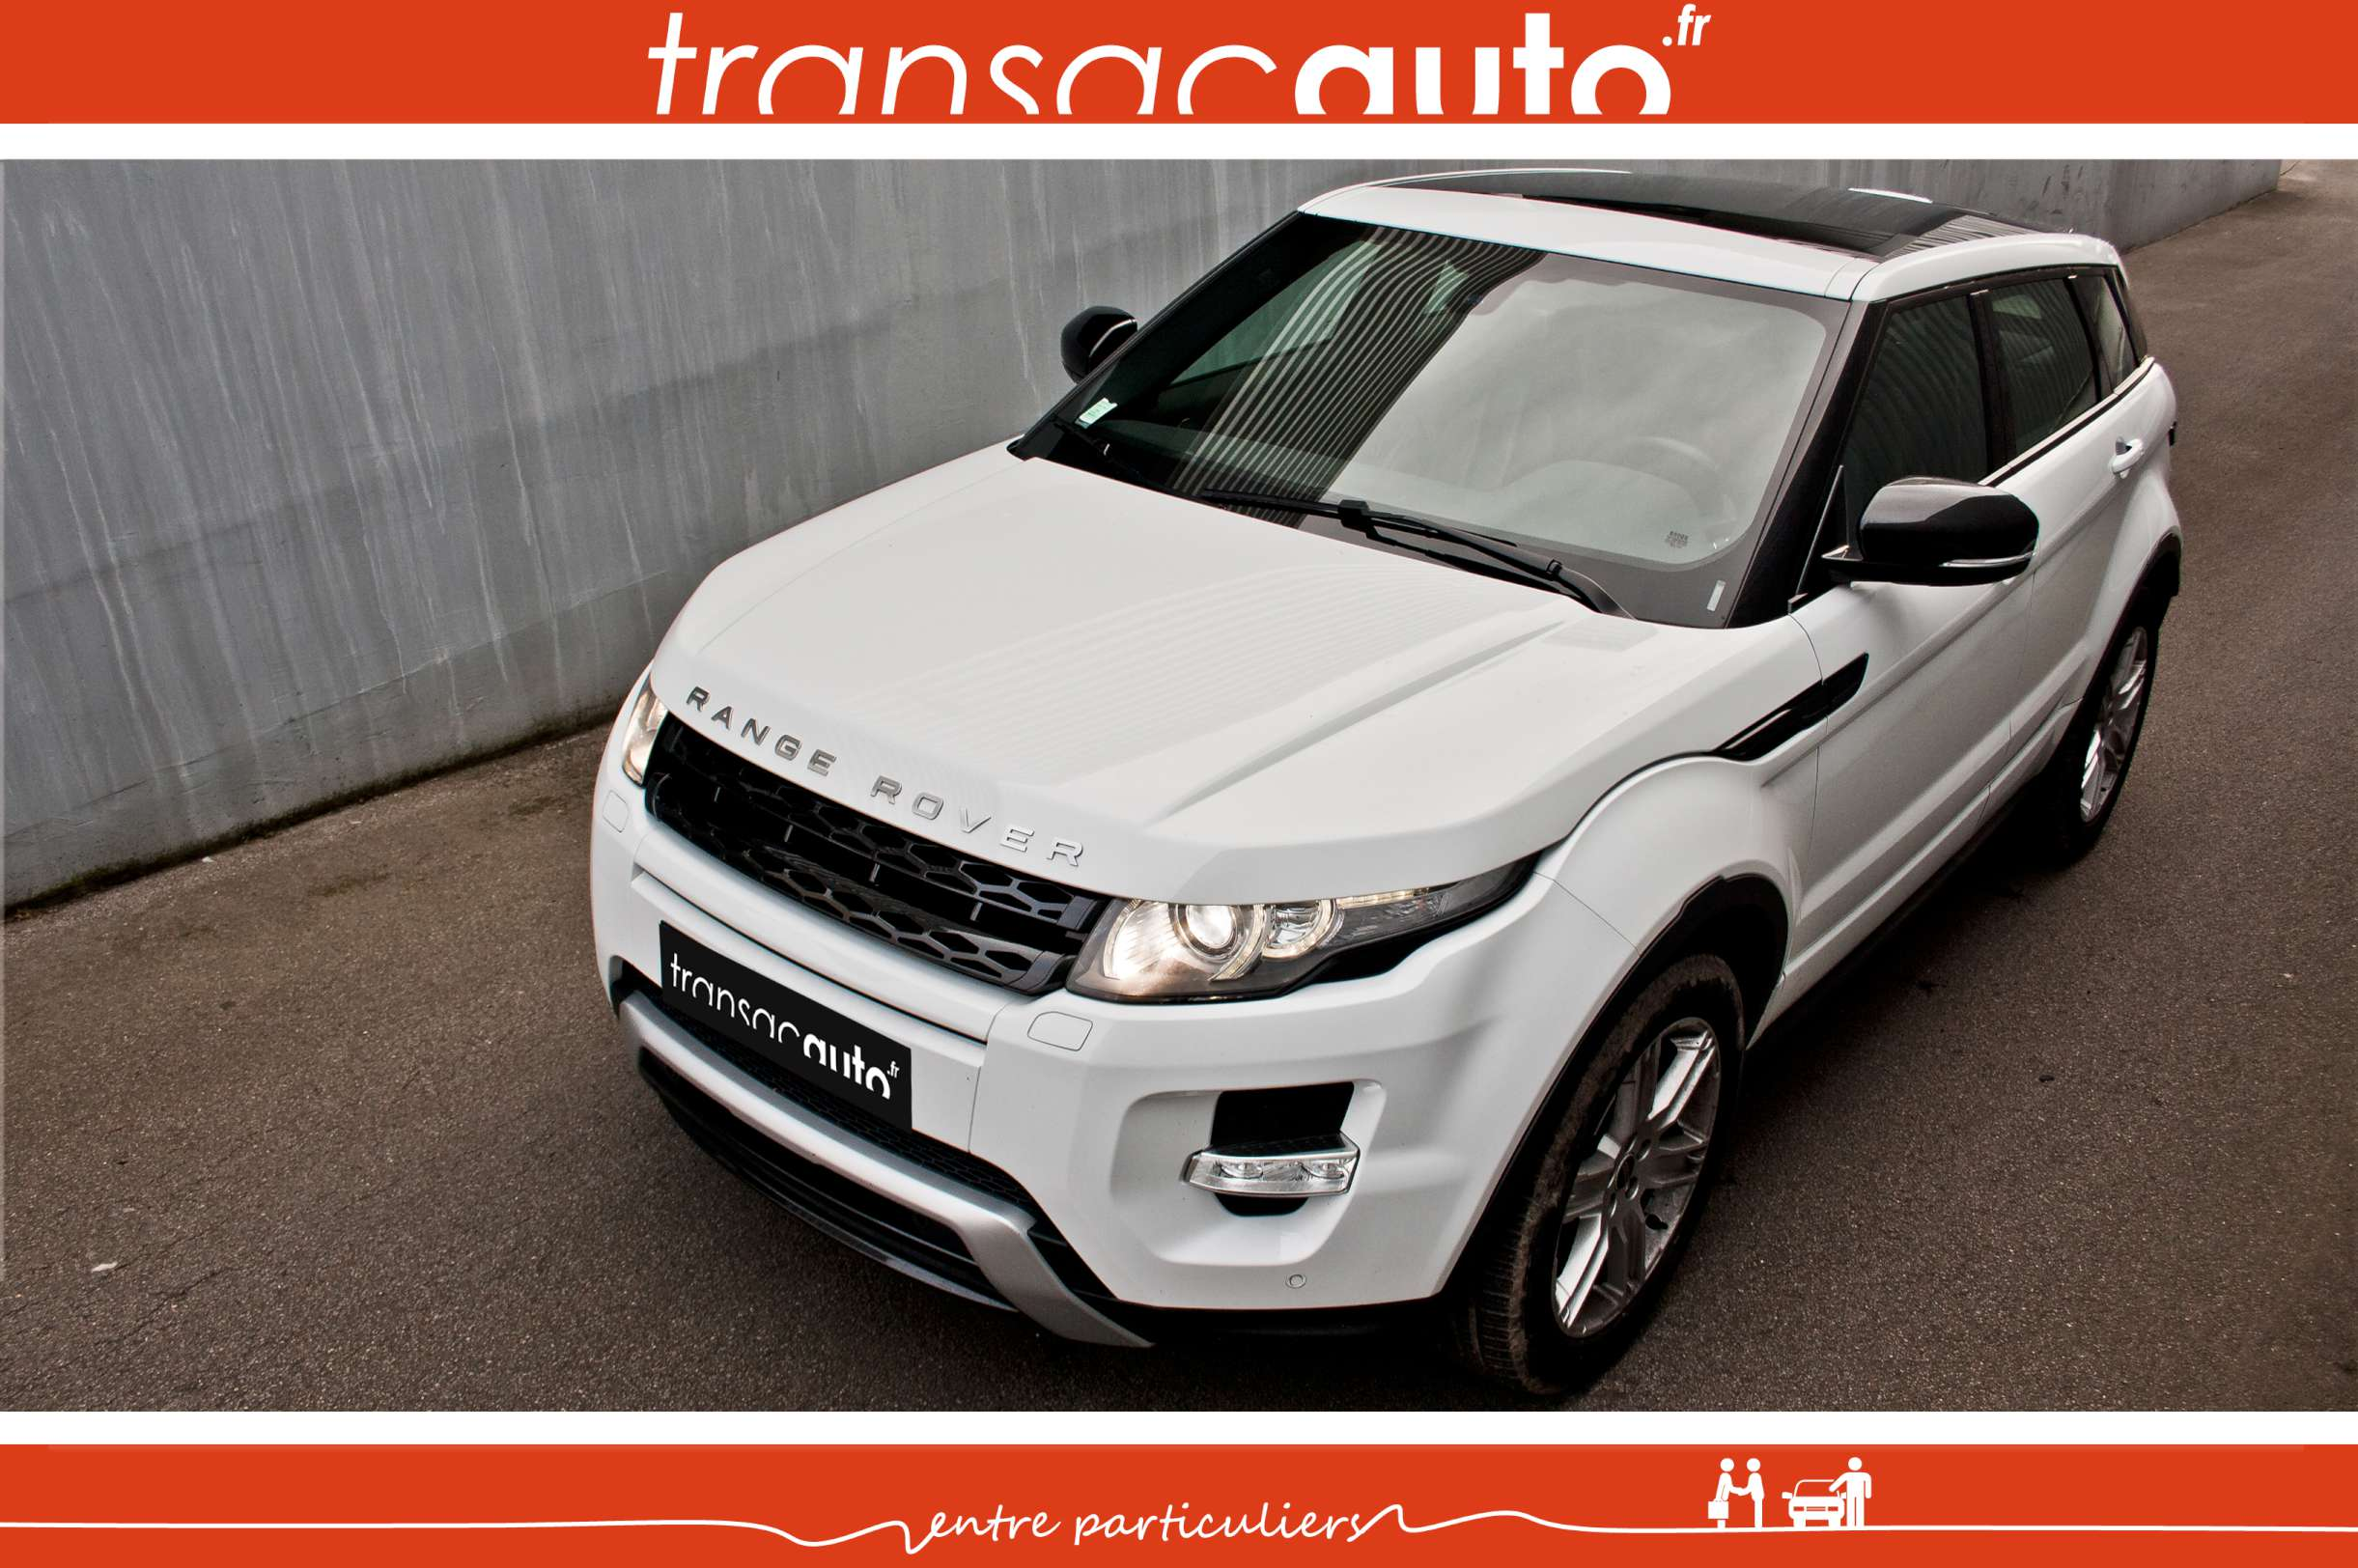 range rover evoque dynamic ed4 2 2l 150cv 2012. Black Bedroom Furniture Sets. Home Design Ideas